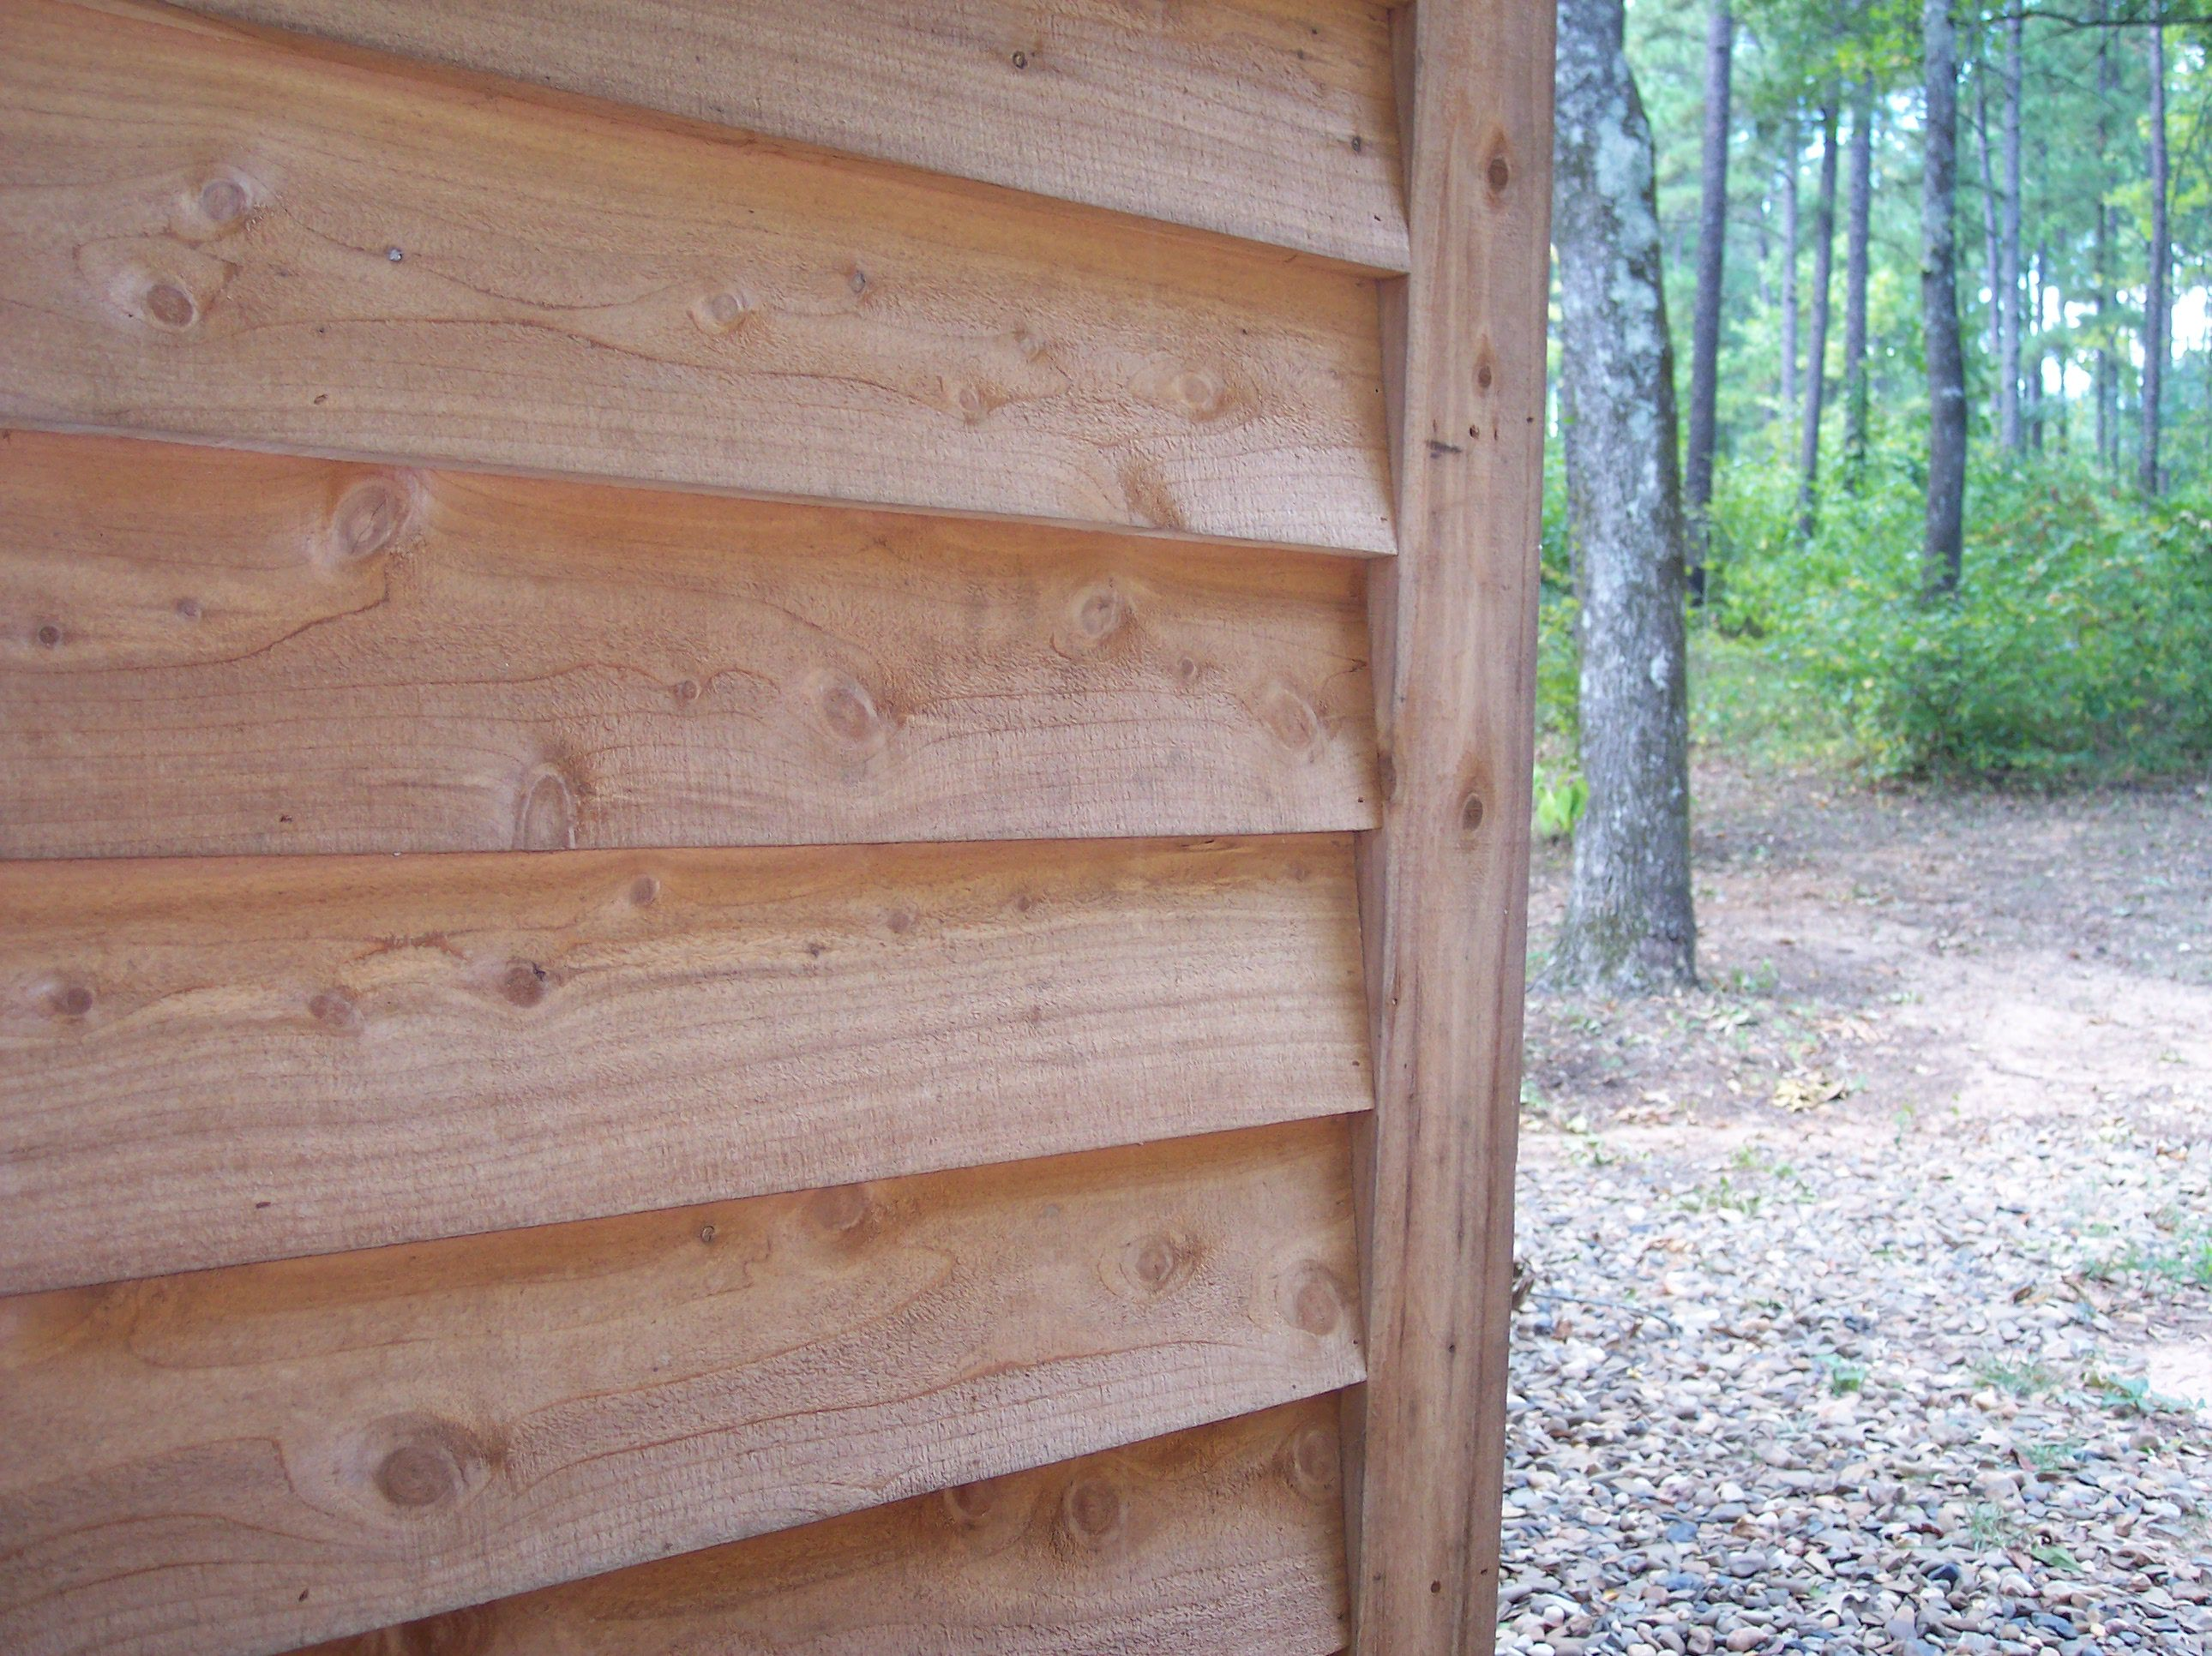 Red Cedar And Yellow Pine Log Siding V Groove Lumber From Silver Creek Sawmill In Oklahoma Wood Siding Exterior House Exterior Cedar Lap Siding